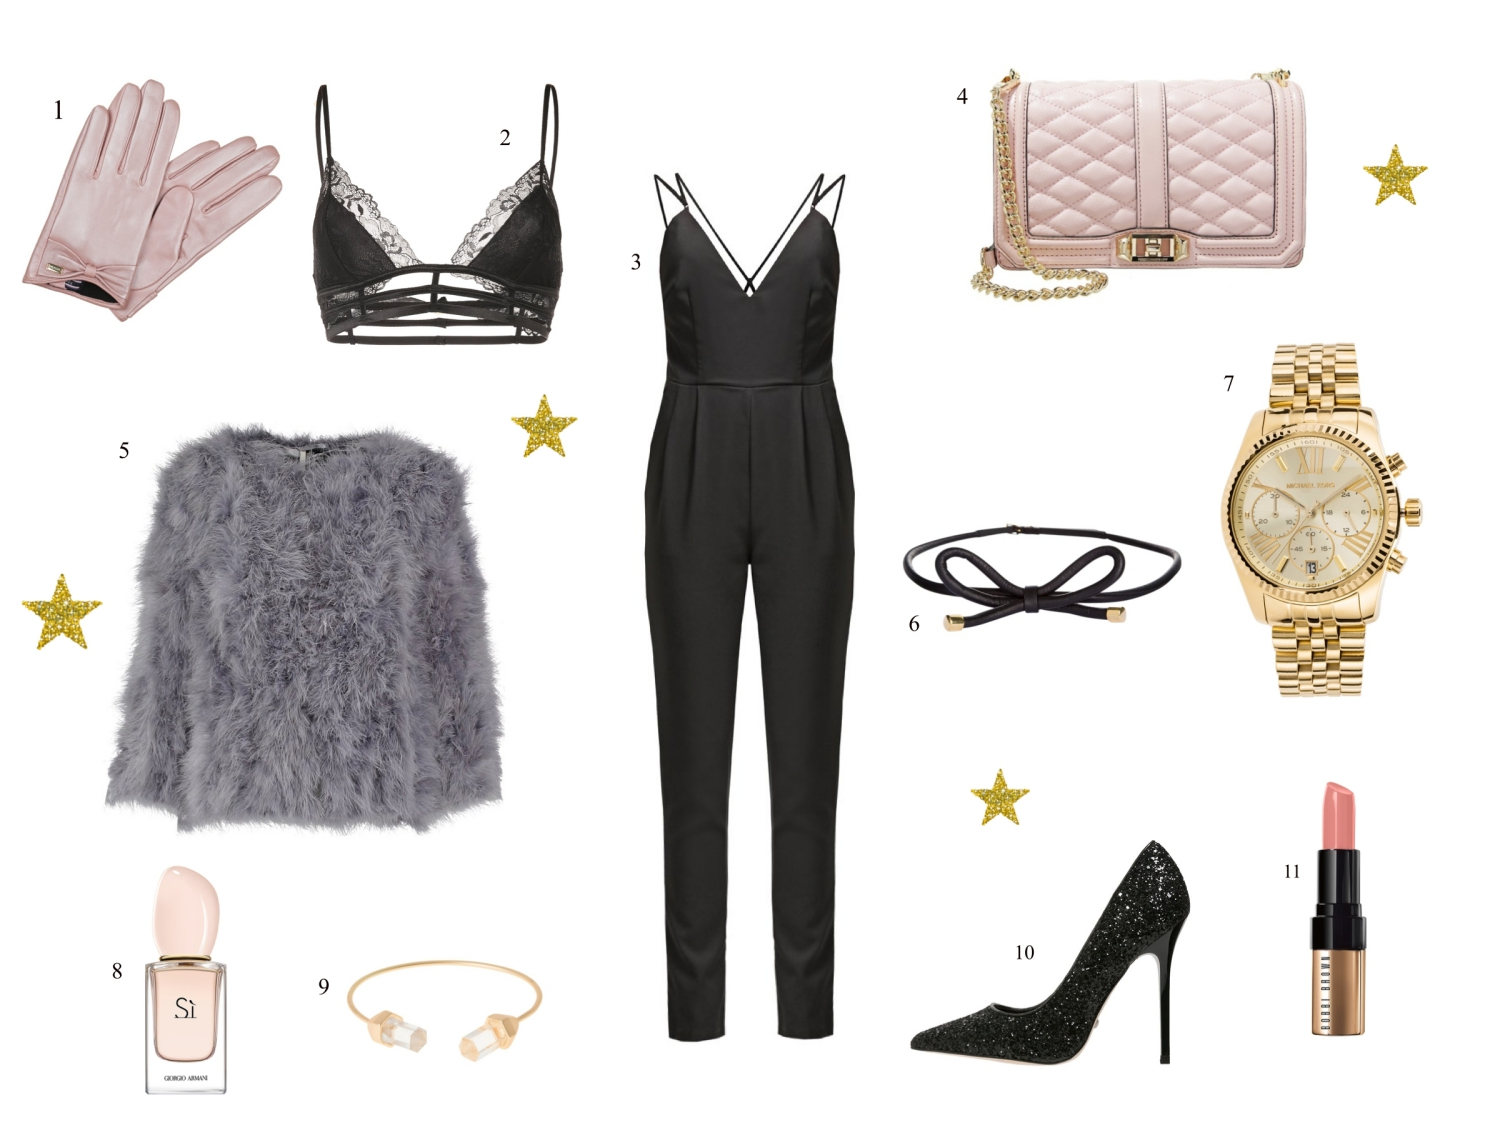 Christmas outfit inspiration jumpsuit